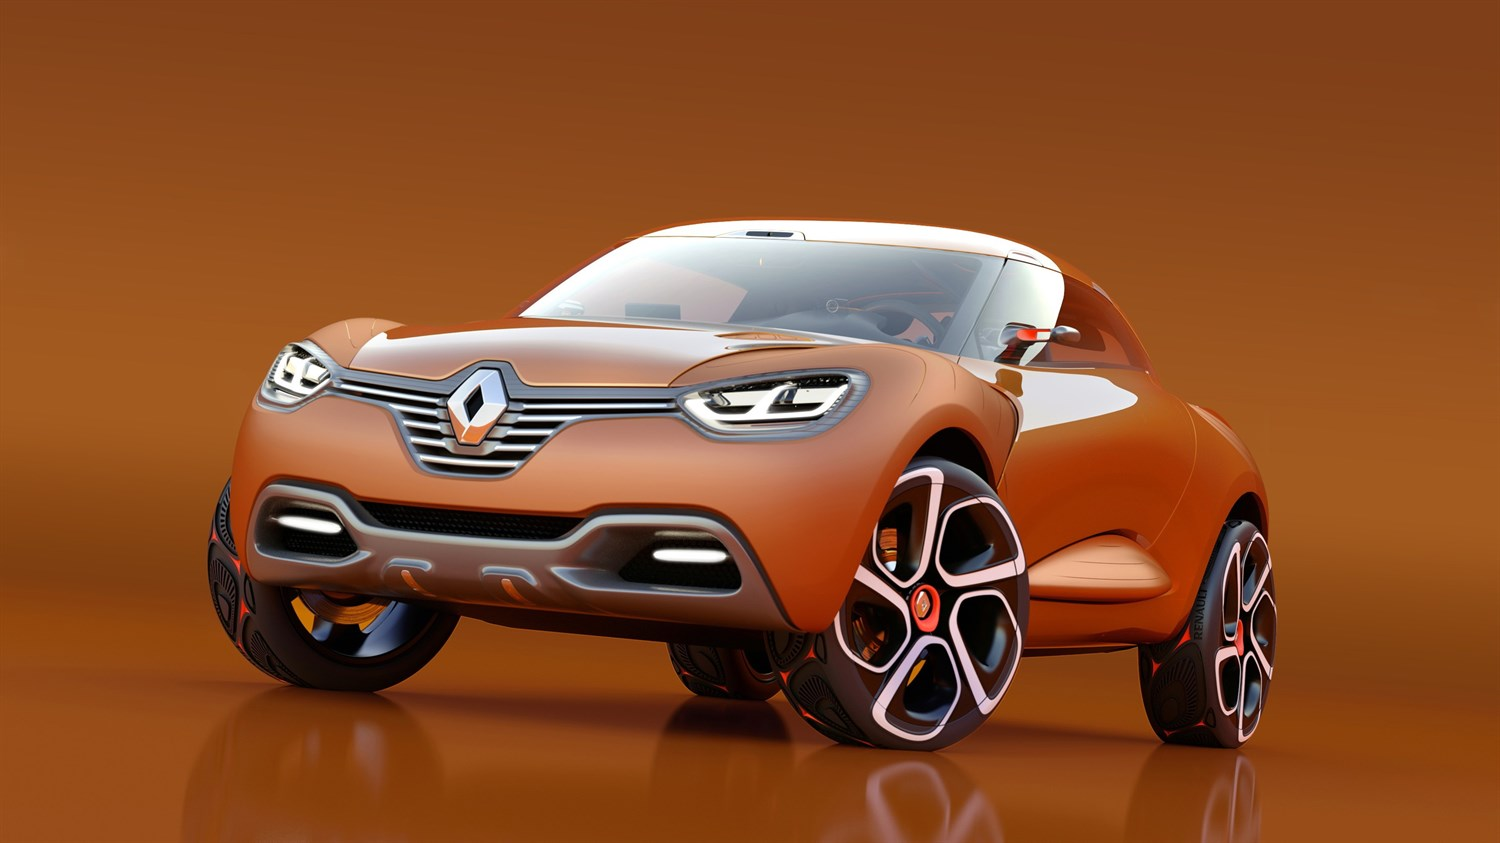 Renault CAPTUR Concept - 3/4 left front end view of vehicle